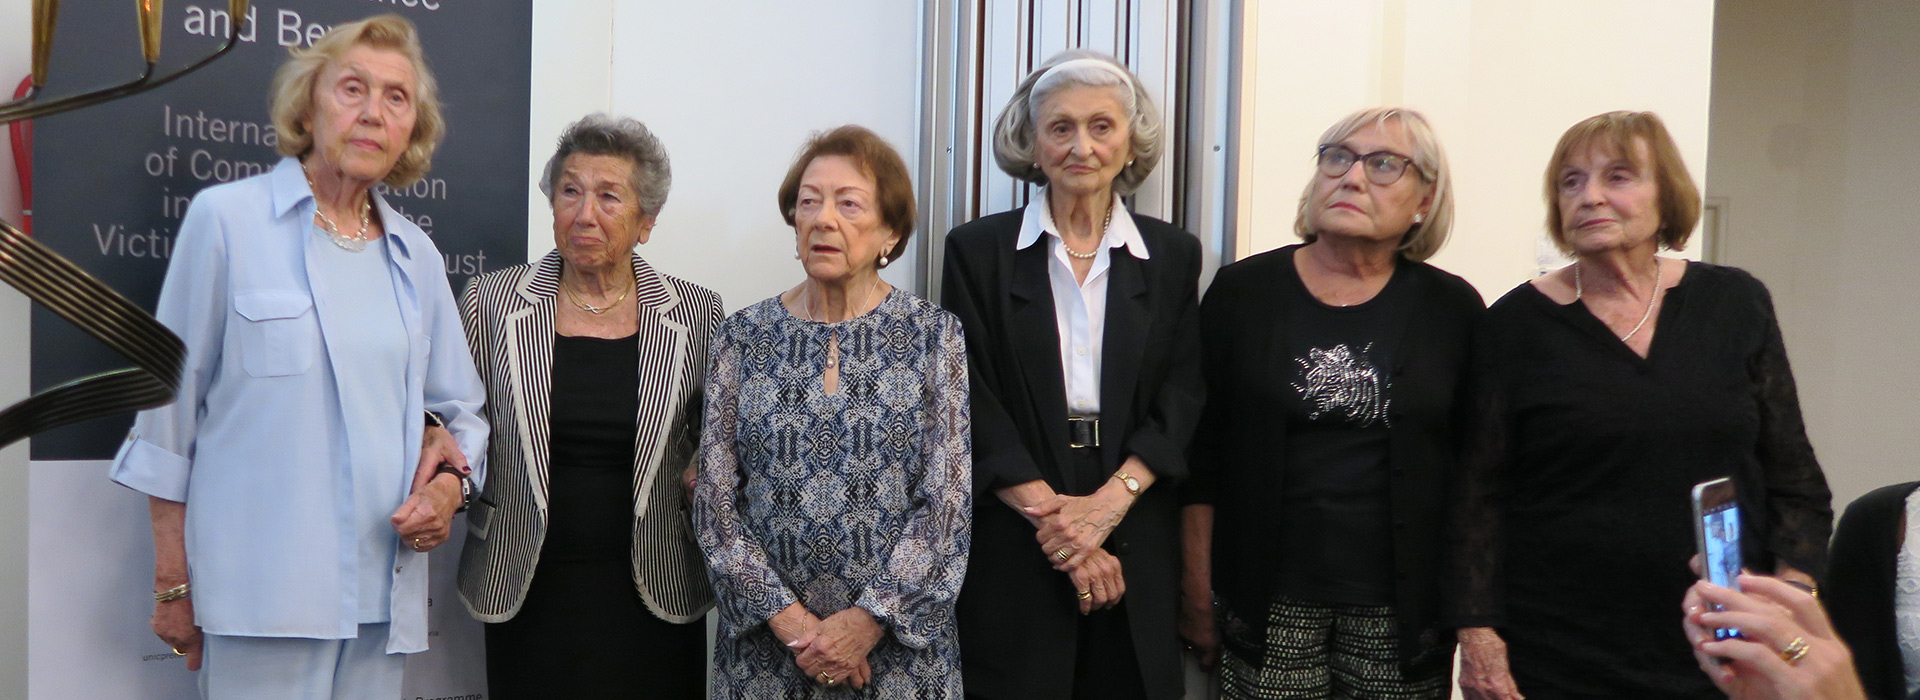 Support - Cape Town Holocaust and Genocide Centre